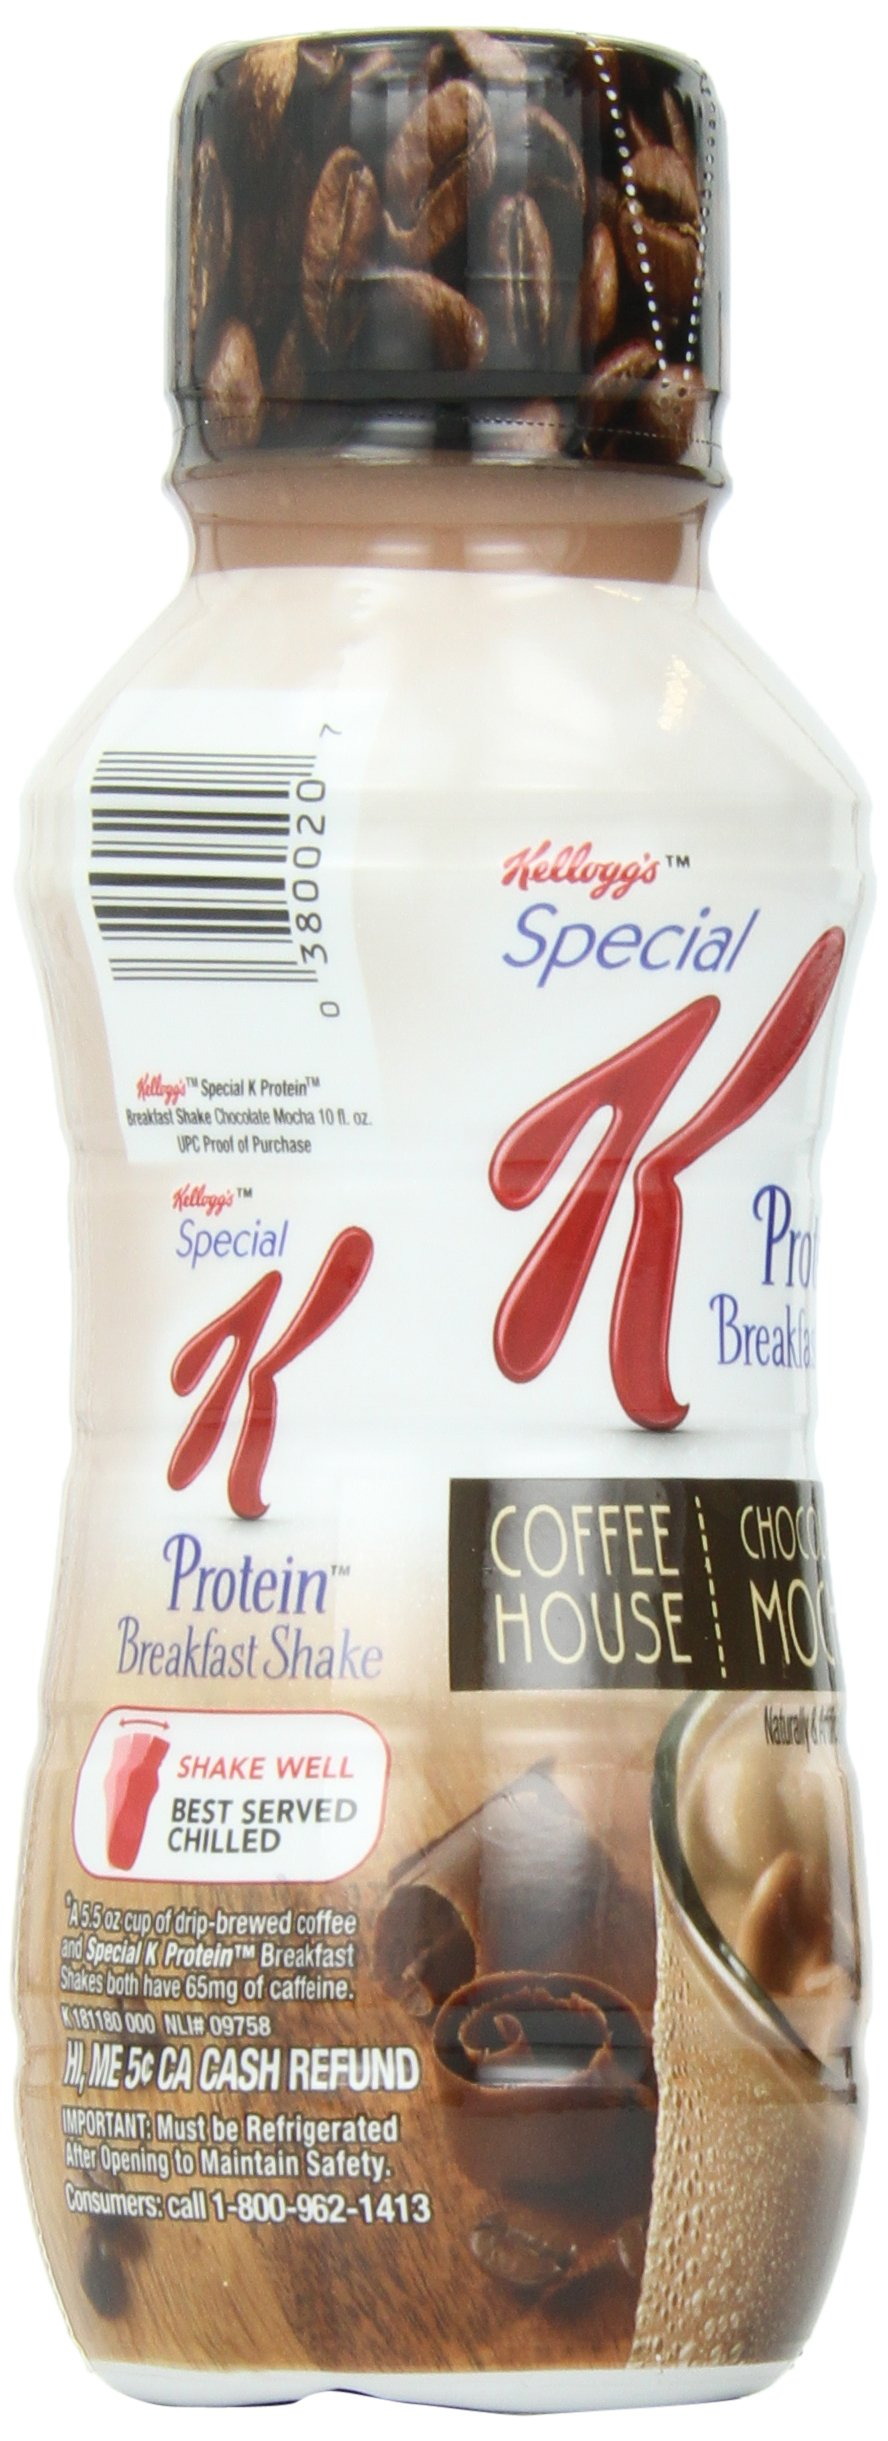 Kellogg's Special K Coffee House Breakfast Shake, Chocolate Mocha, 10 Ounce Bottles (Pack of 24) by Special K